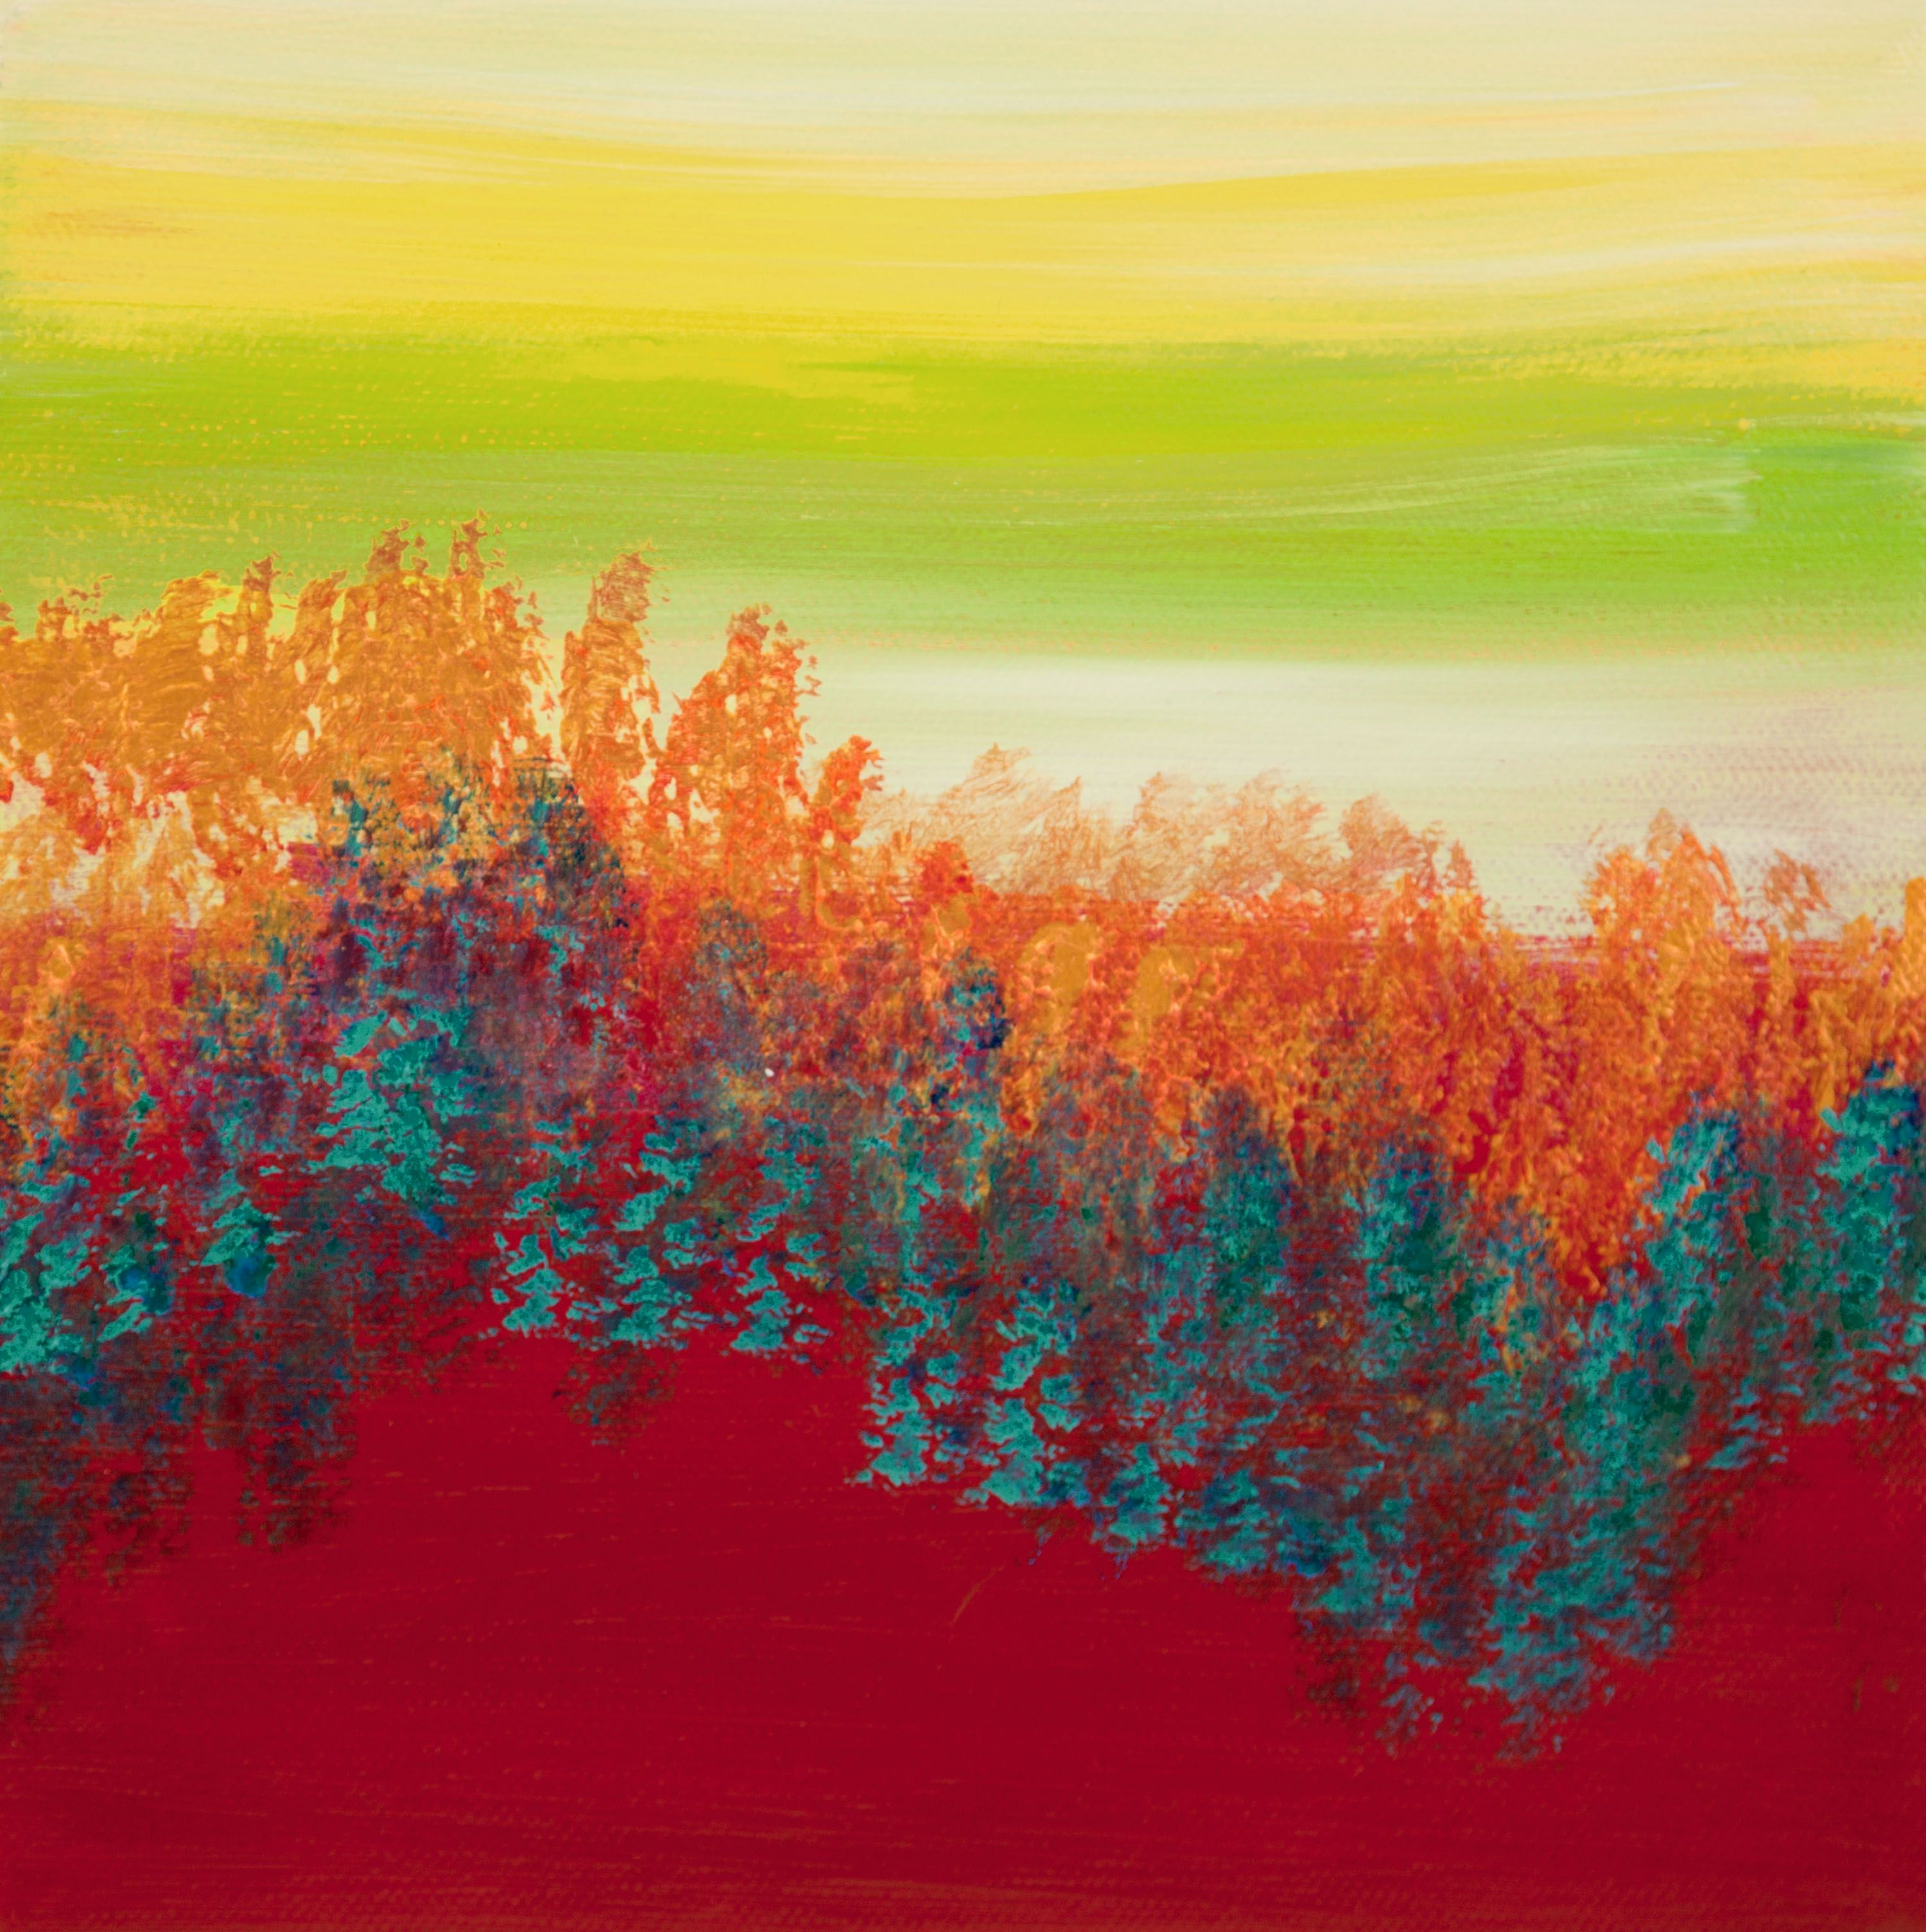 Views Of Nature 24 8x8 Inches Sold Hilary Winfield Portland Fine Art Colorful Abstract Art Abstract Art Diy Abstract Art Inspiration